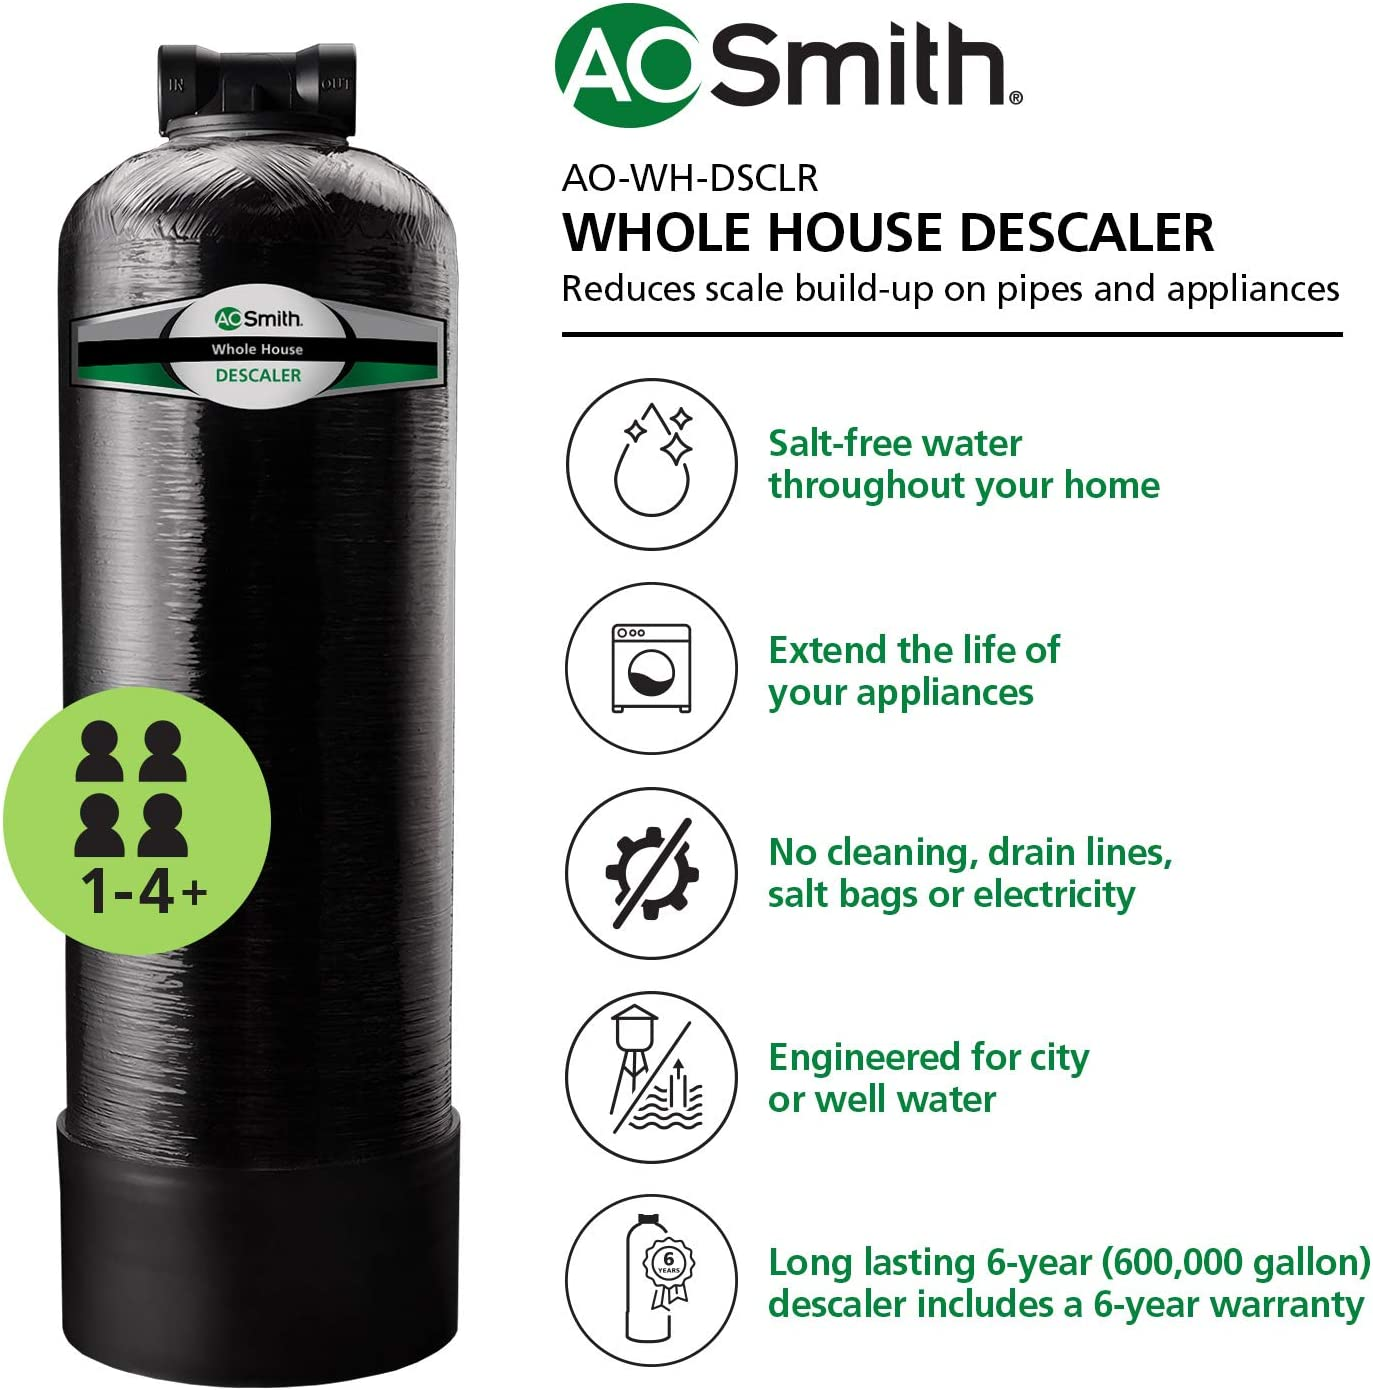 AO Smith water softener reviews - Features